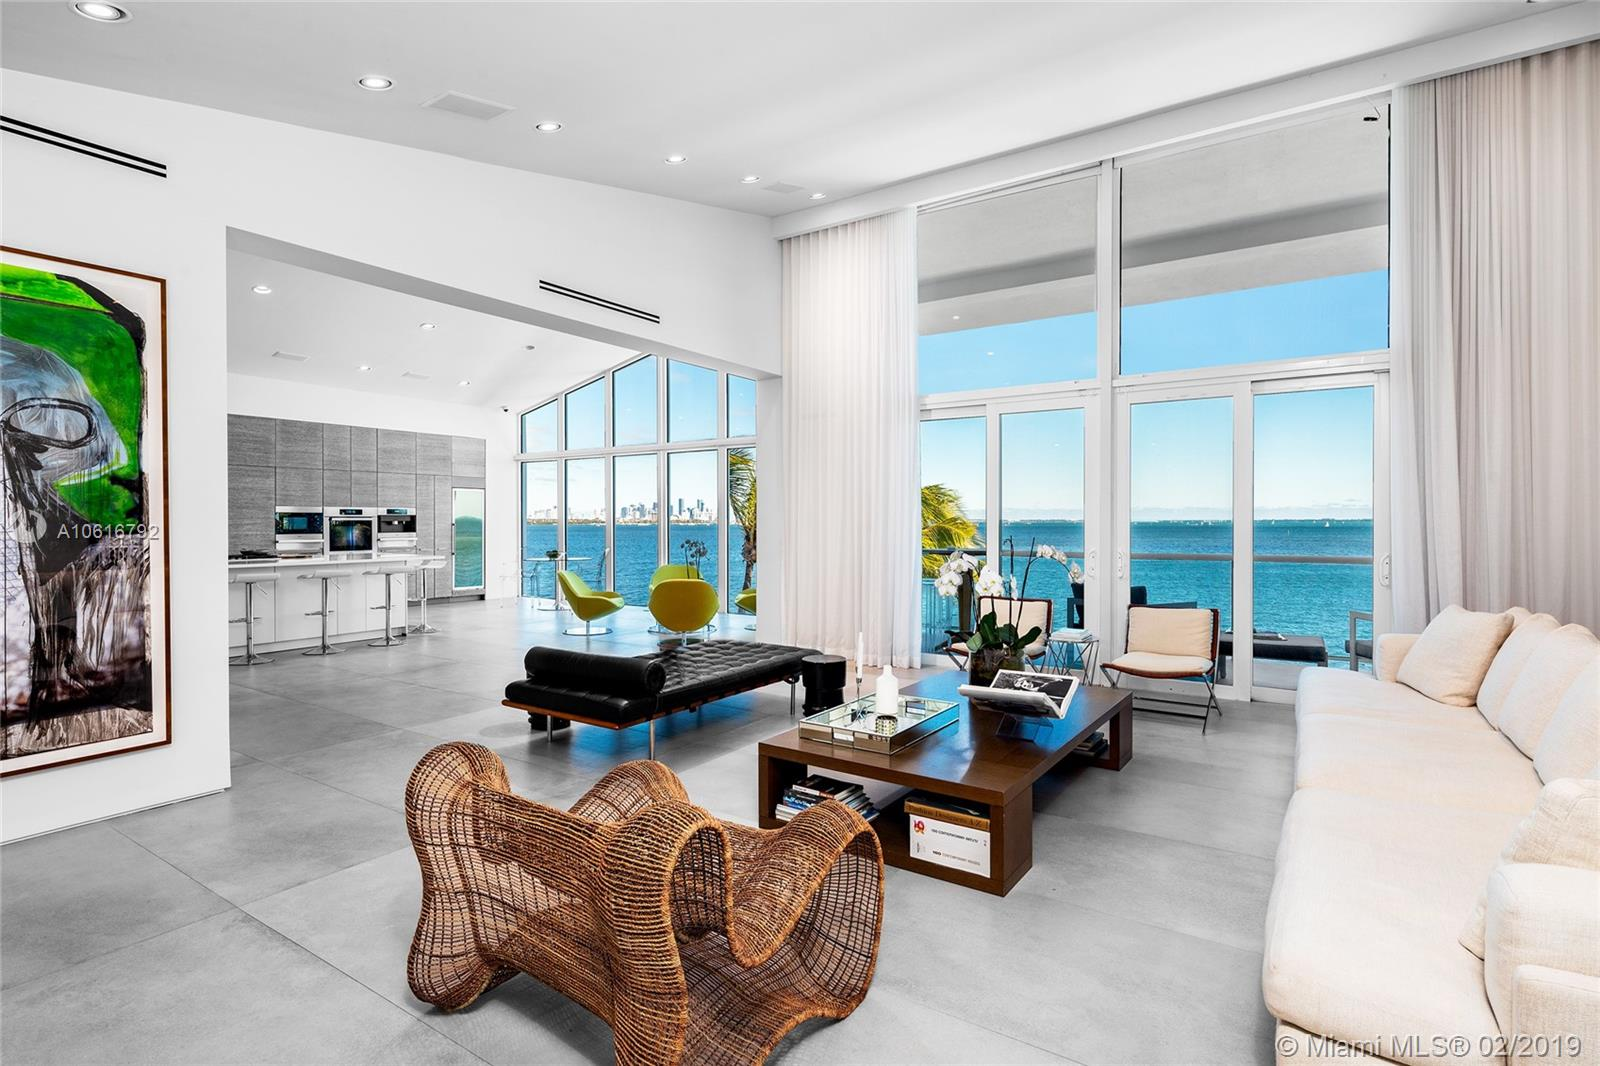 This stunning contemporary tri-level residence located in the desired gated Sunrise neighborhood sits directly facing Biscayne Bay w/sweeping unobstructed open bay, downtown skyline & Key Biscayne views. Residence boasts 5BR+gym/6+1BA, stone floors throughout, soaring ceilings, interior elevator & masterfully designed open floor plan. Amazing 3rd level features a spacious living room w/soaring ceilings, private dining room, & custom designed gourmet kitchen by Alno w/Miele appliances. Beautiful bay-facing principal suite with terrace access, Carrera marble bath, custom closet spaces & open bay views. Outdoor highlights feature covered lounge area, large pool w/Jacuzzi, private dock w/boat lift & 100 FT of sparkling waterfront in Miami's most prime location. Dual 500 tank mega generator.